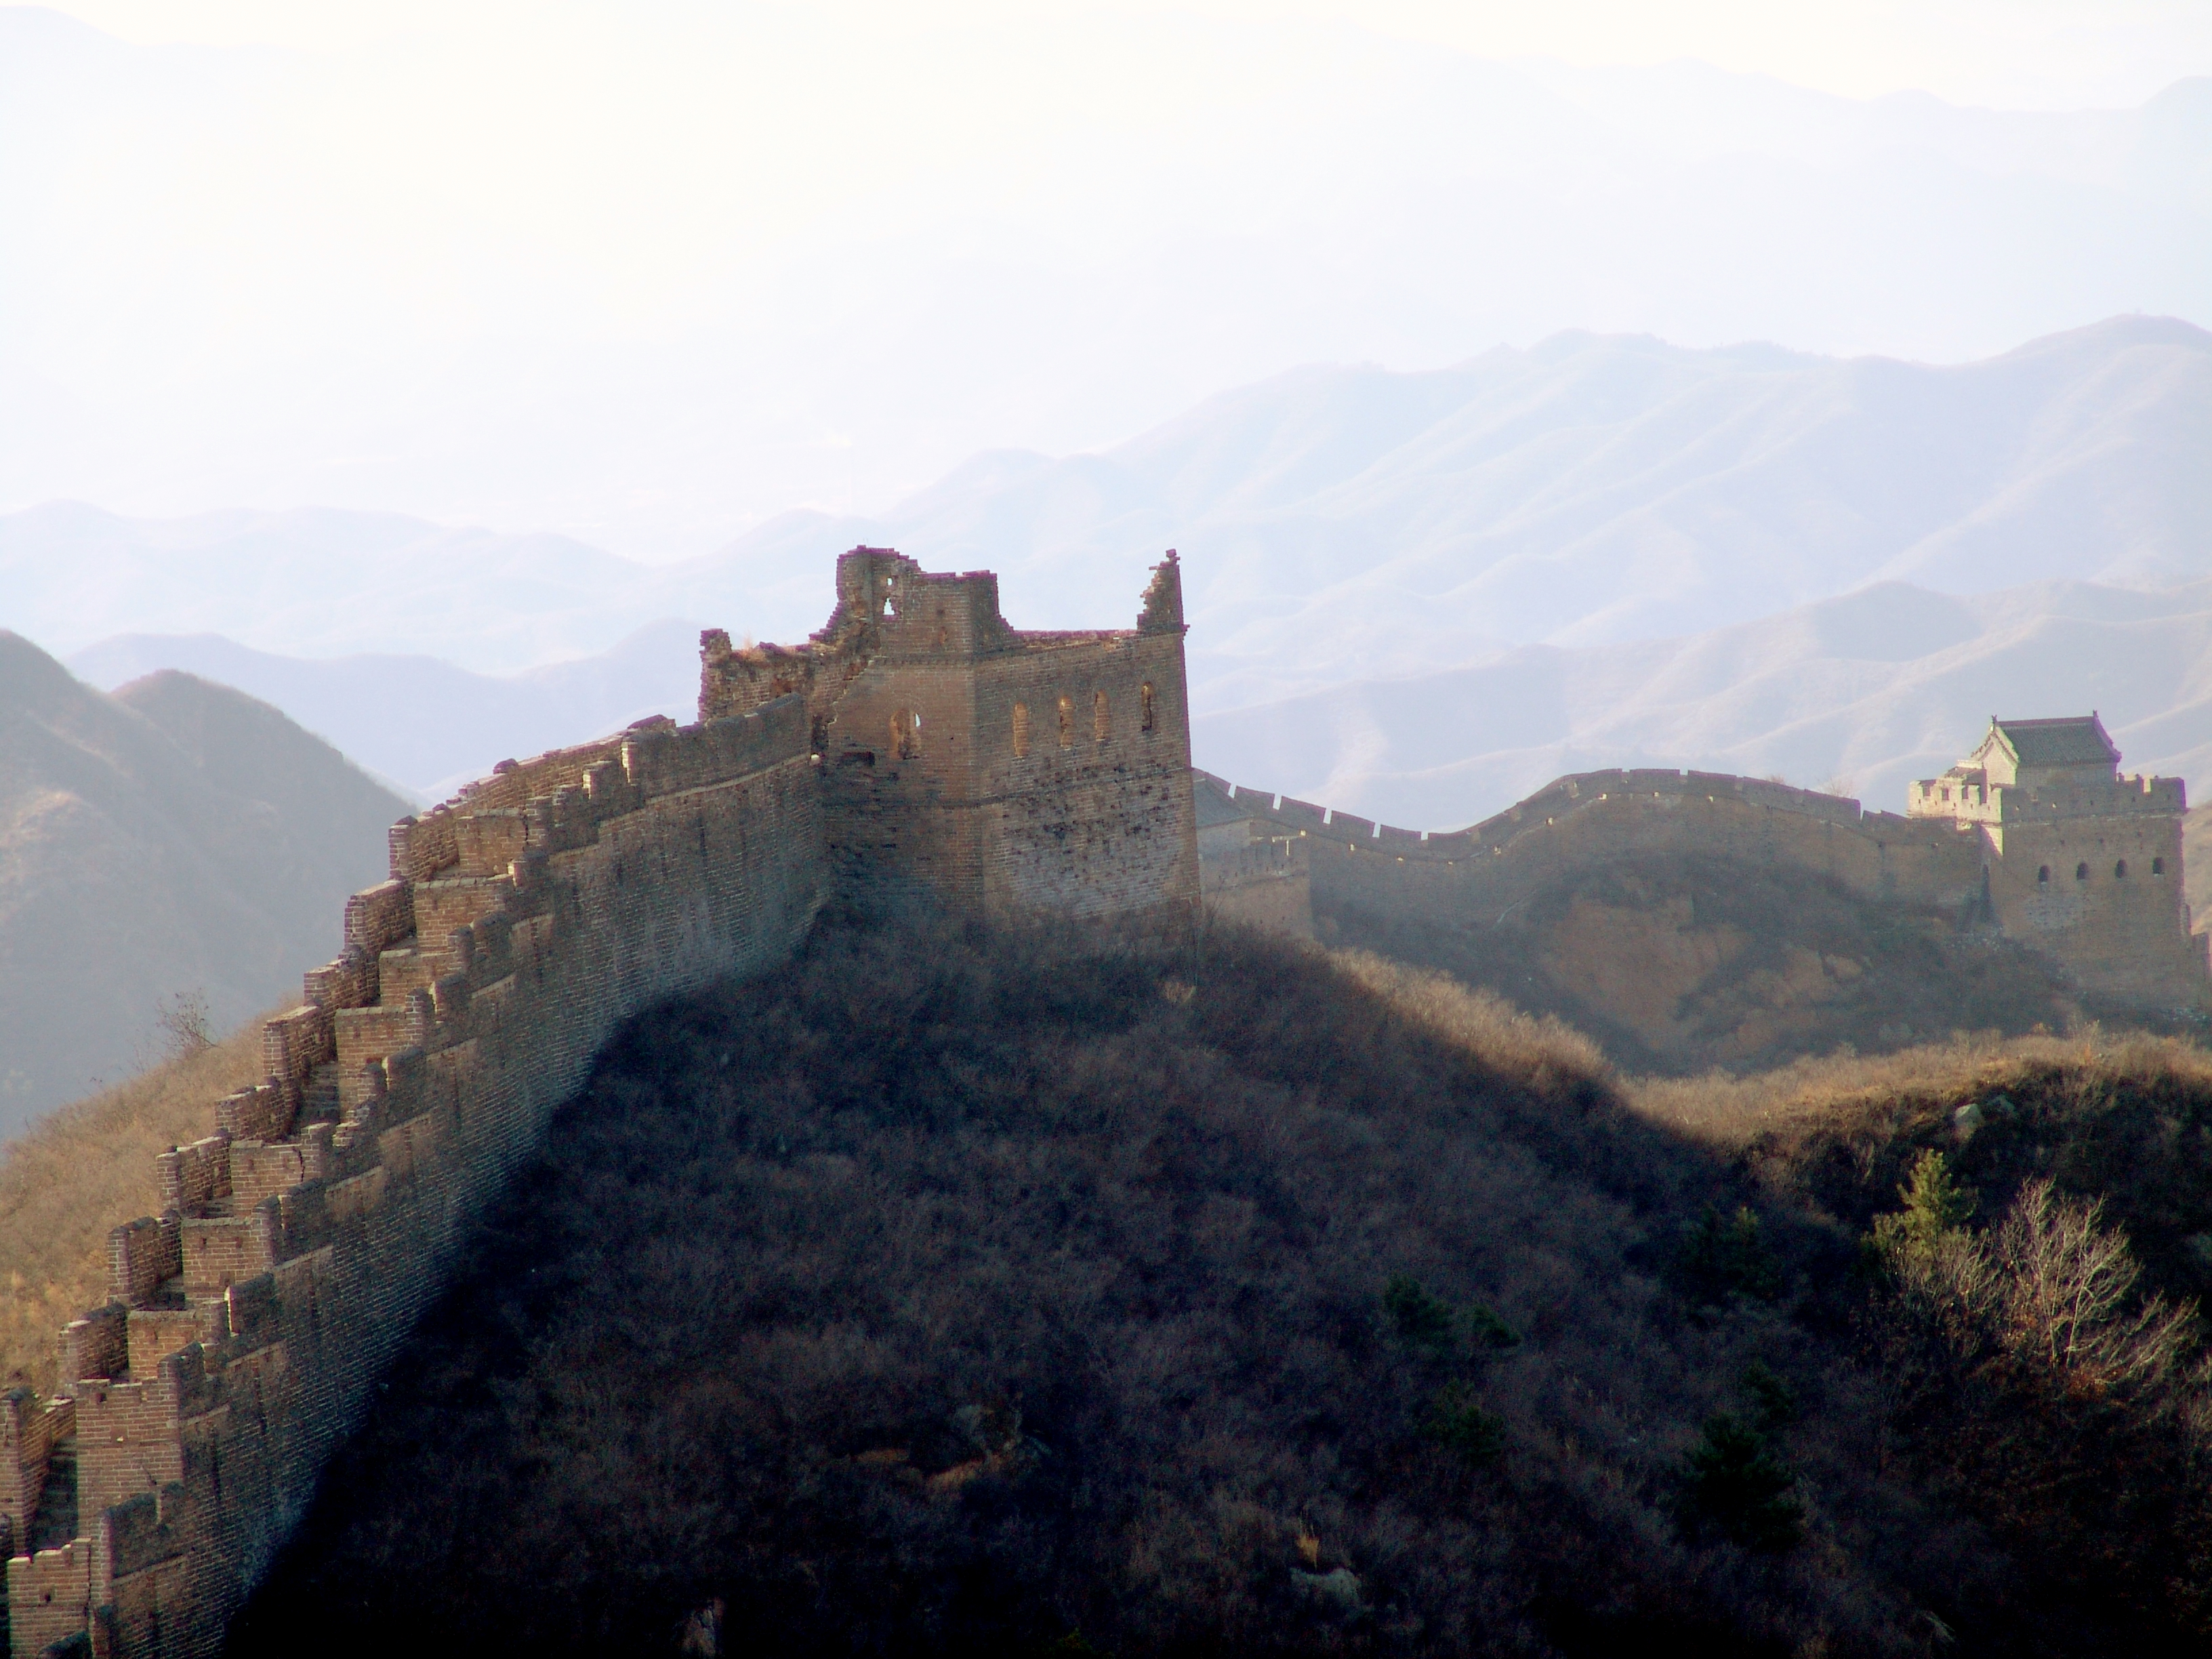 essay on great wall of china in english 200 words